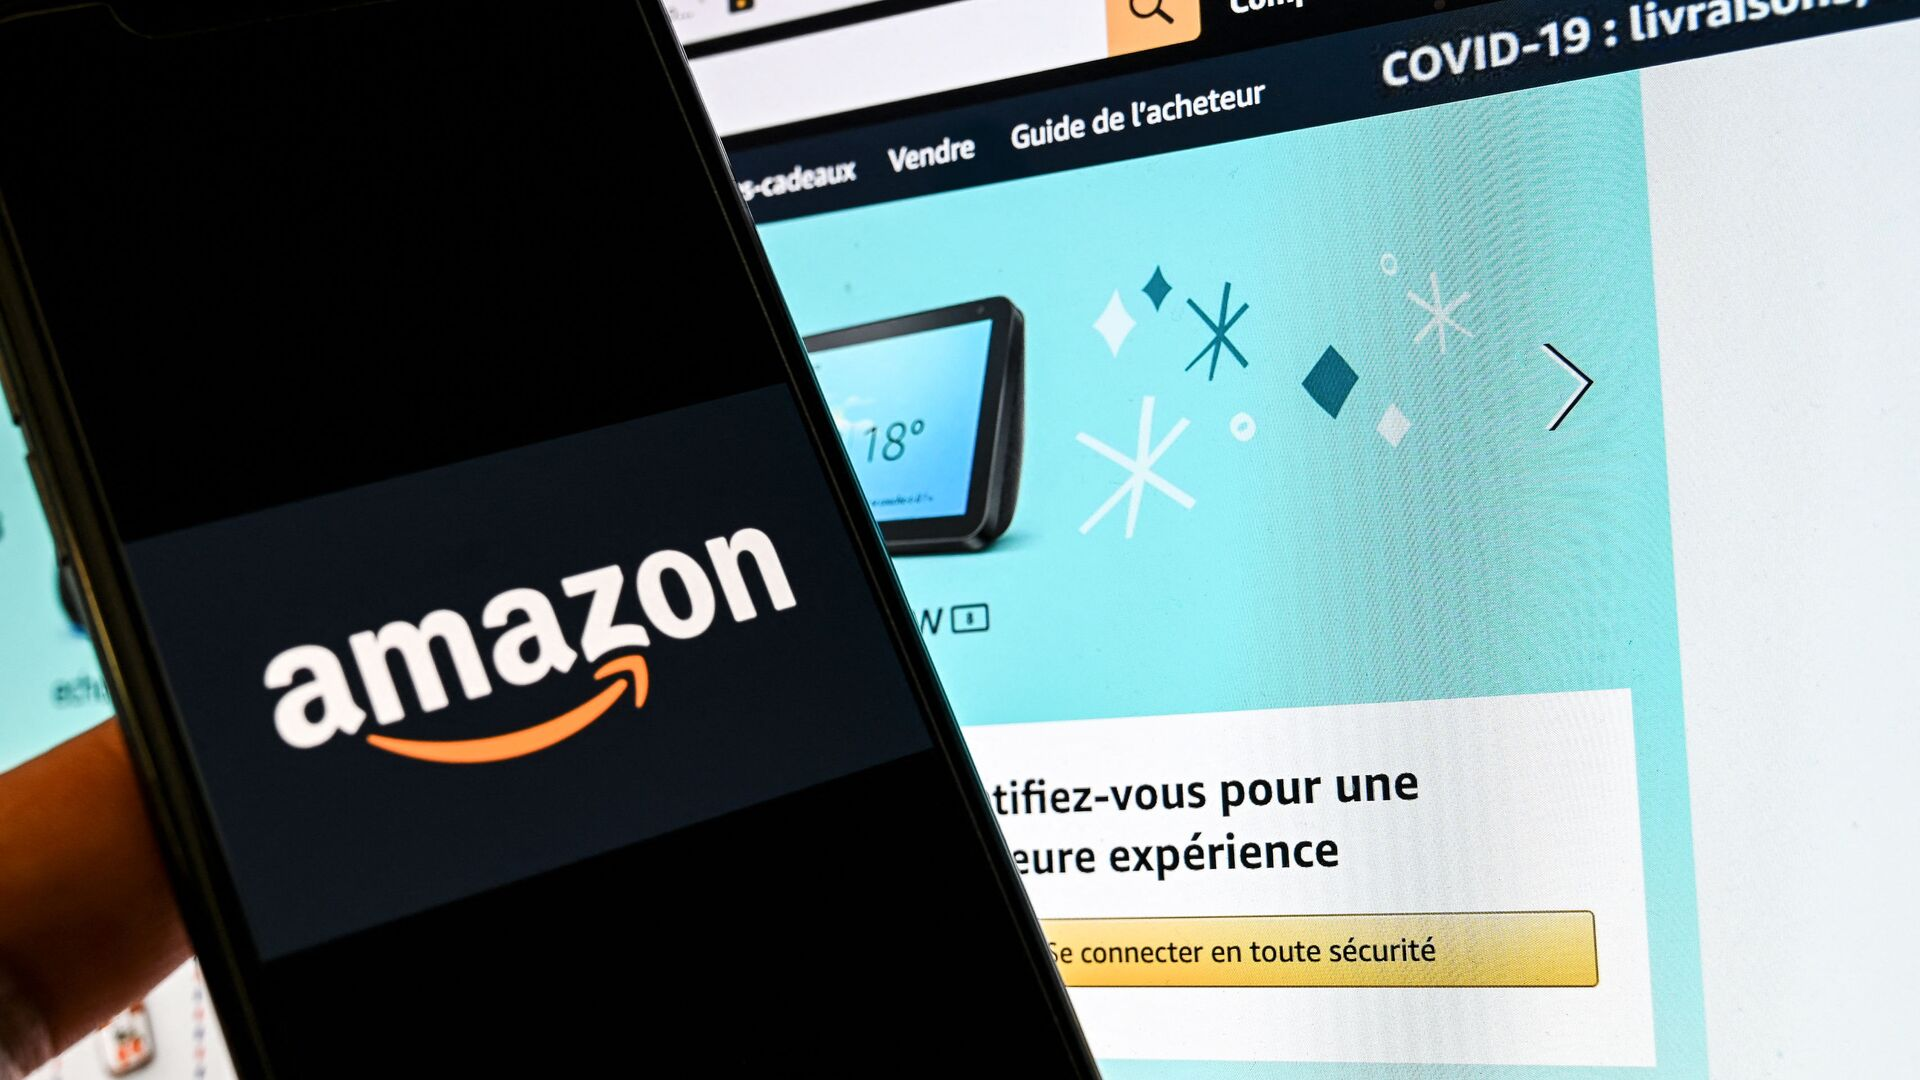 In this photograph taken on November 18, 2020 in Lille, a person poses with a smartphone showing an Amazon logo, in front of a computer screen displaying the home page of Amazon France sales website. - Sputnik International, 1920, 30.07.2021